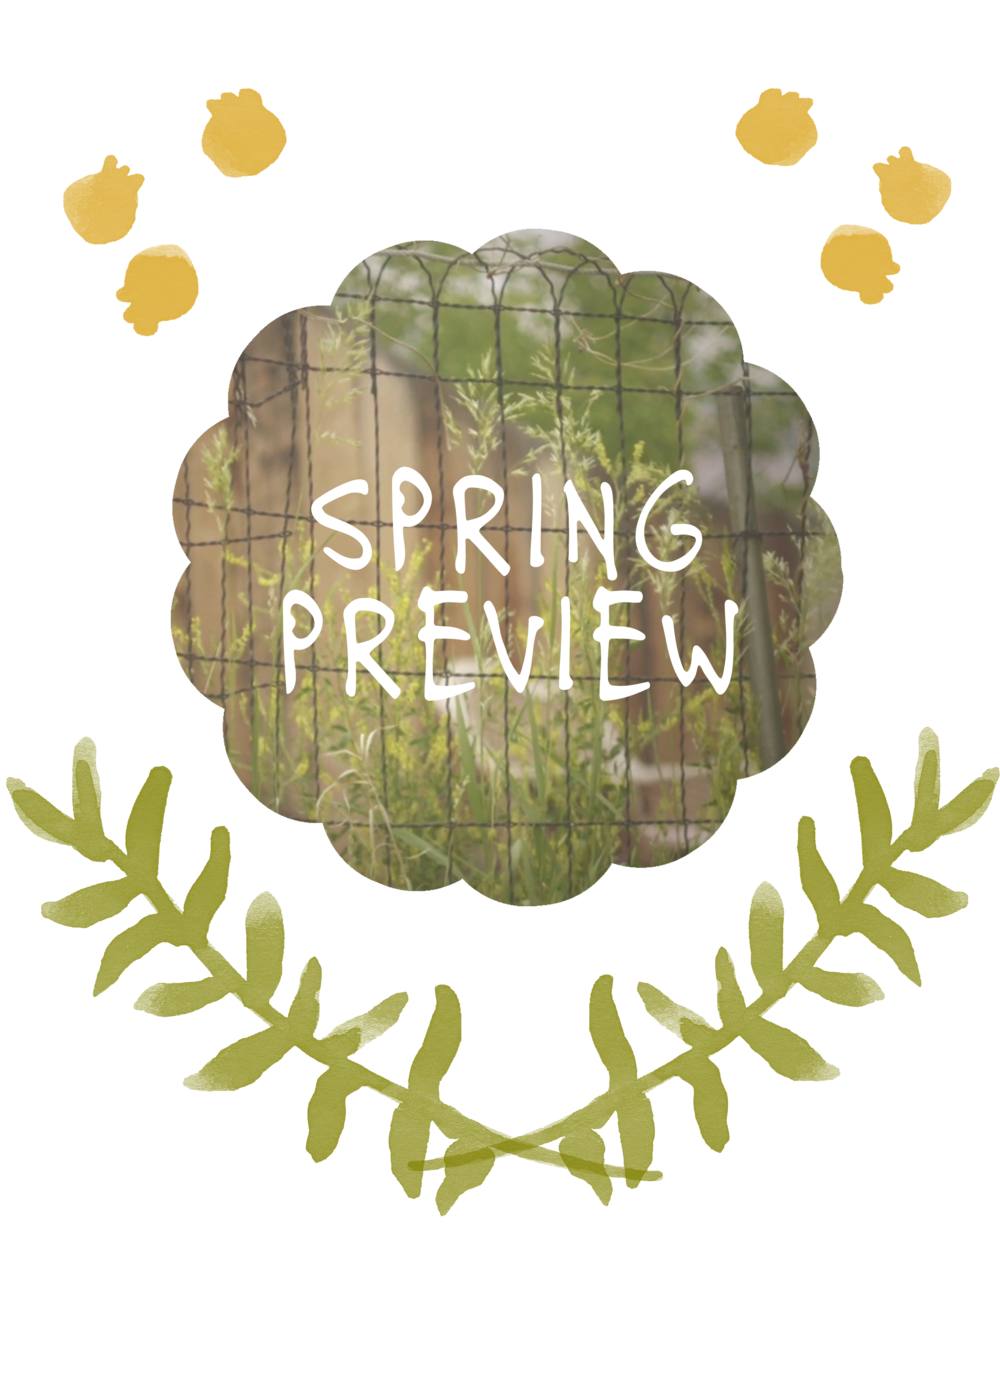 springpreview copy.png